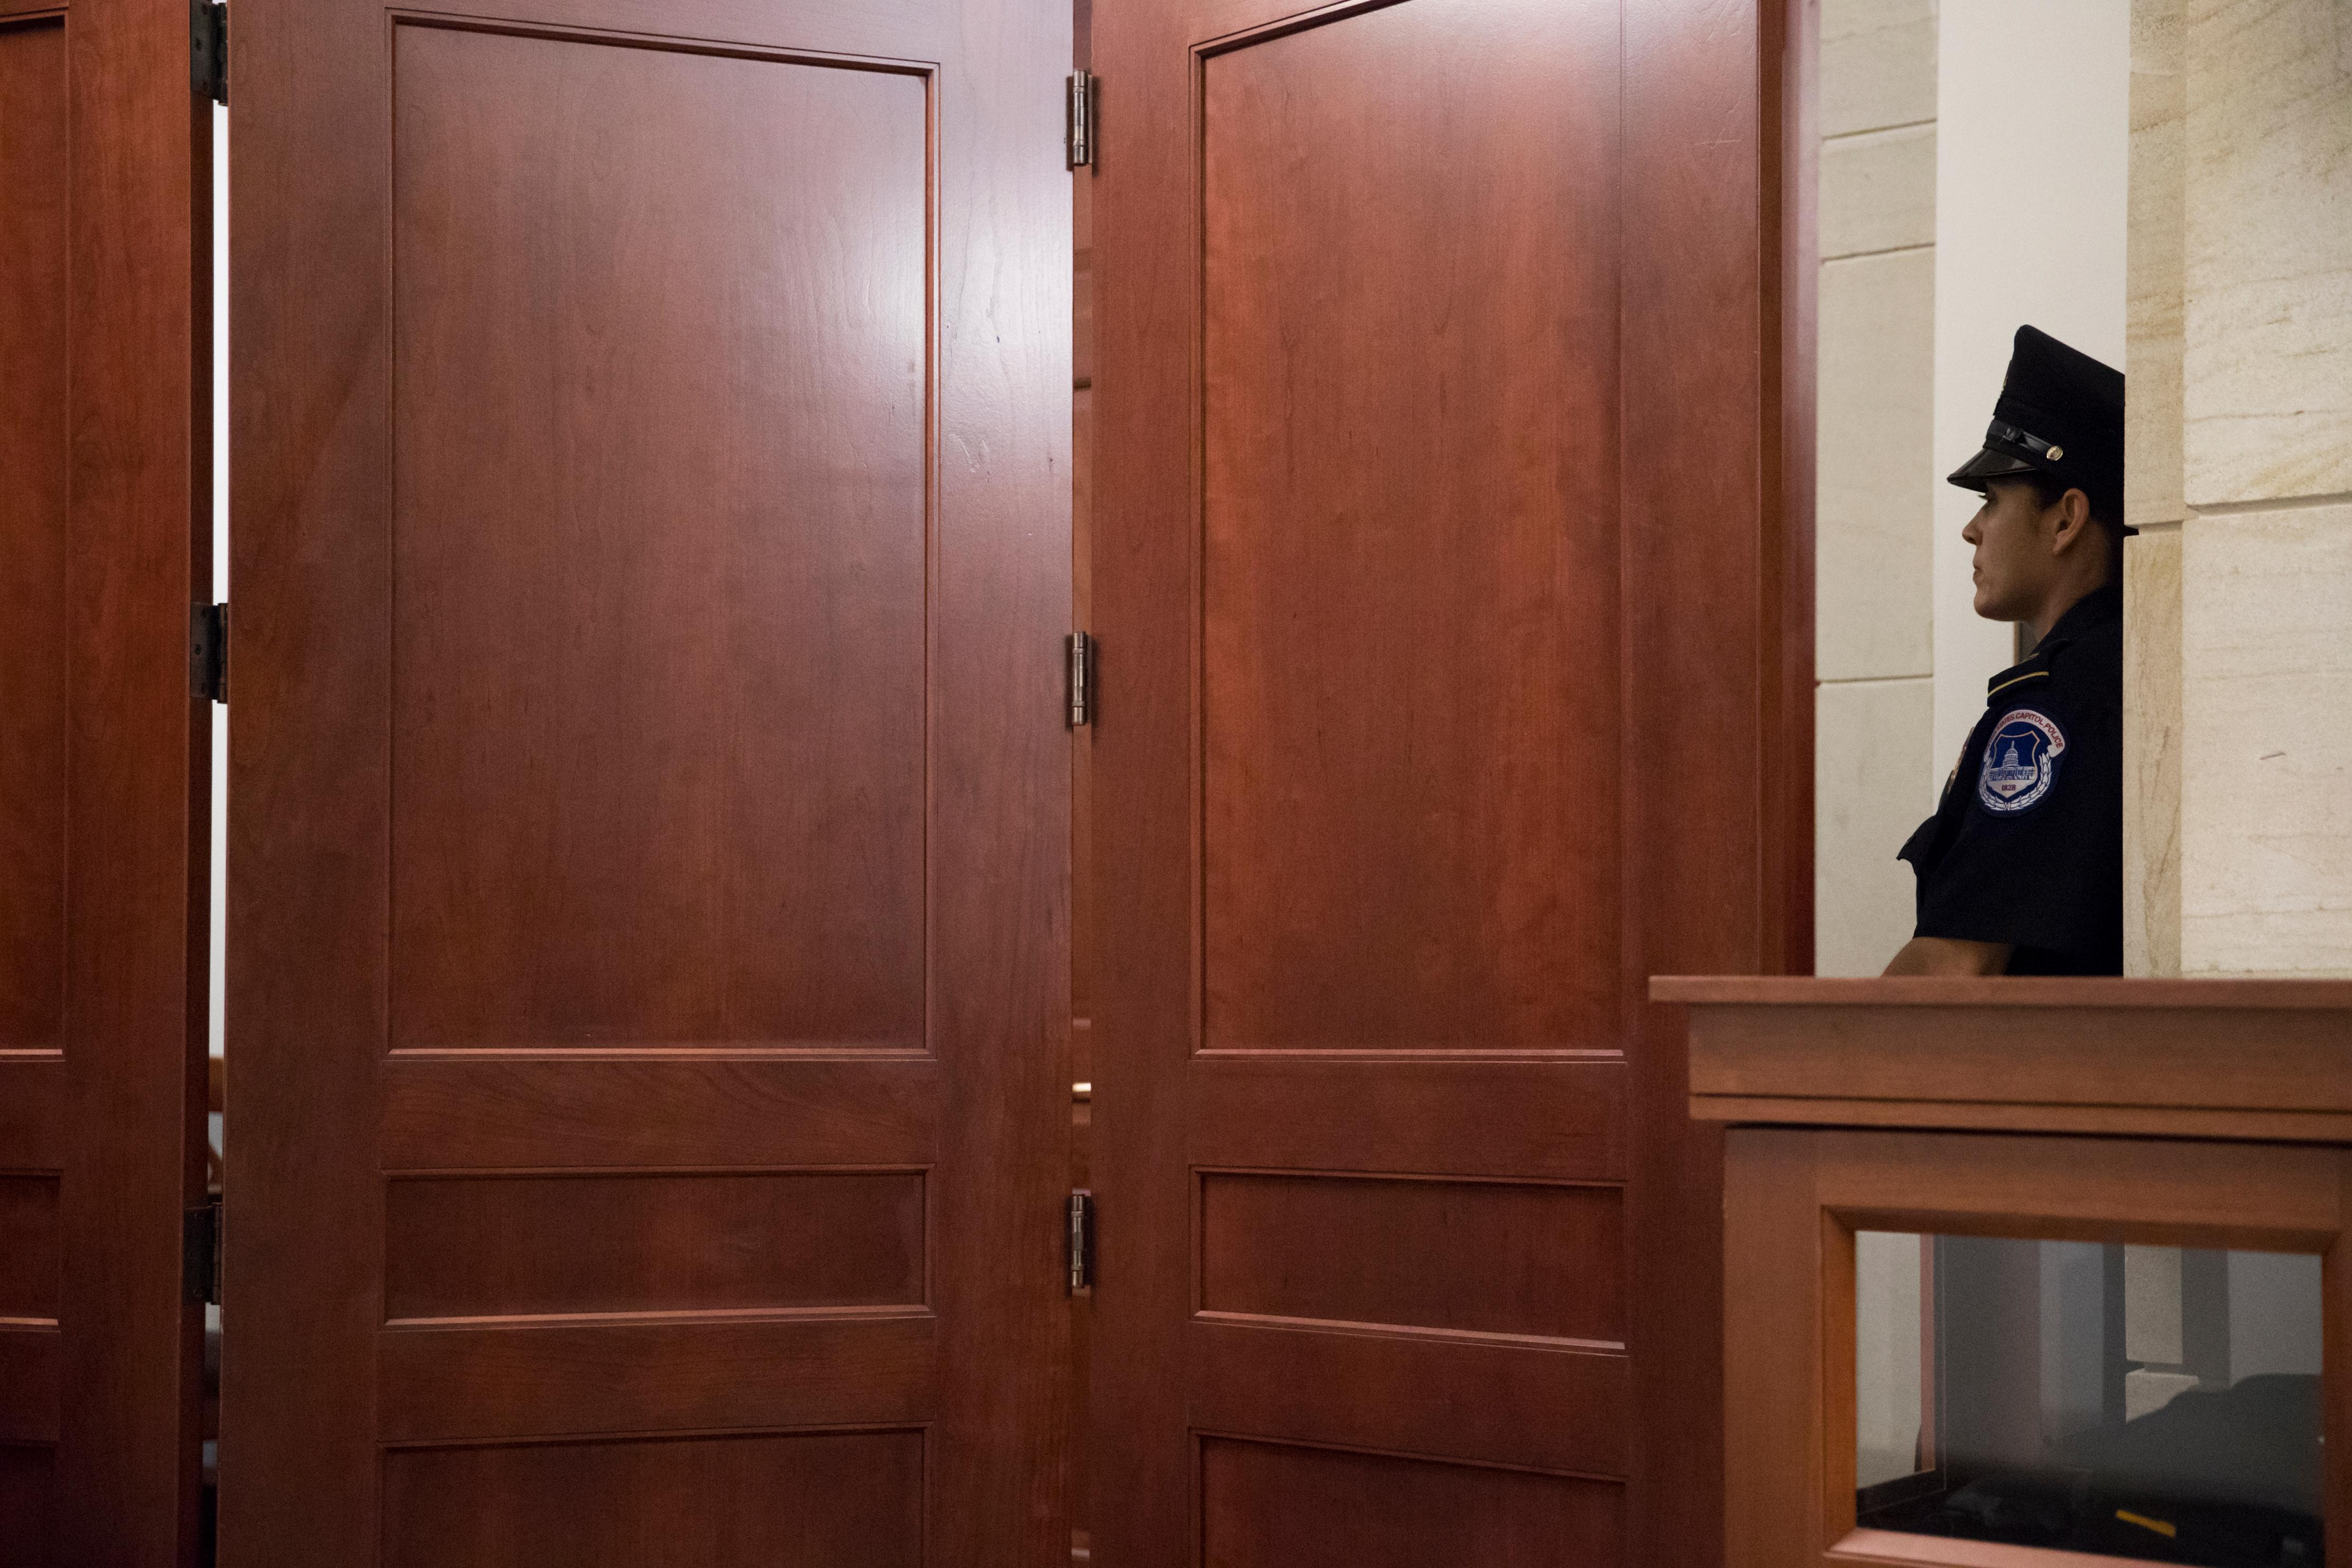 A U.S. Capitol Police officer stands watch while Donald Trump Jr., is interviewed behind closed doors by Senate Judiciary Committee staff investigating the meddling and possible Russian links to President Donald Trump's 2016 presidential campaign, at the Capitol in Washington, Thursday, Sept. 7, 2017.  (AP Photo/J. Scott Applewhite)